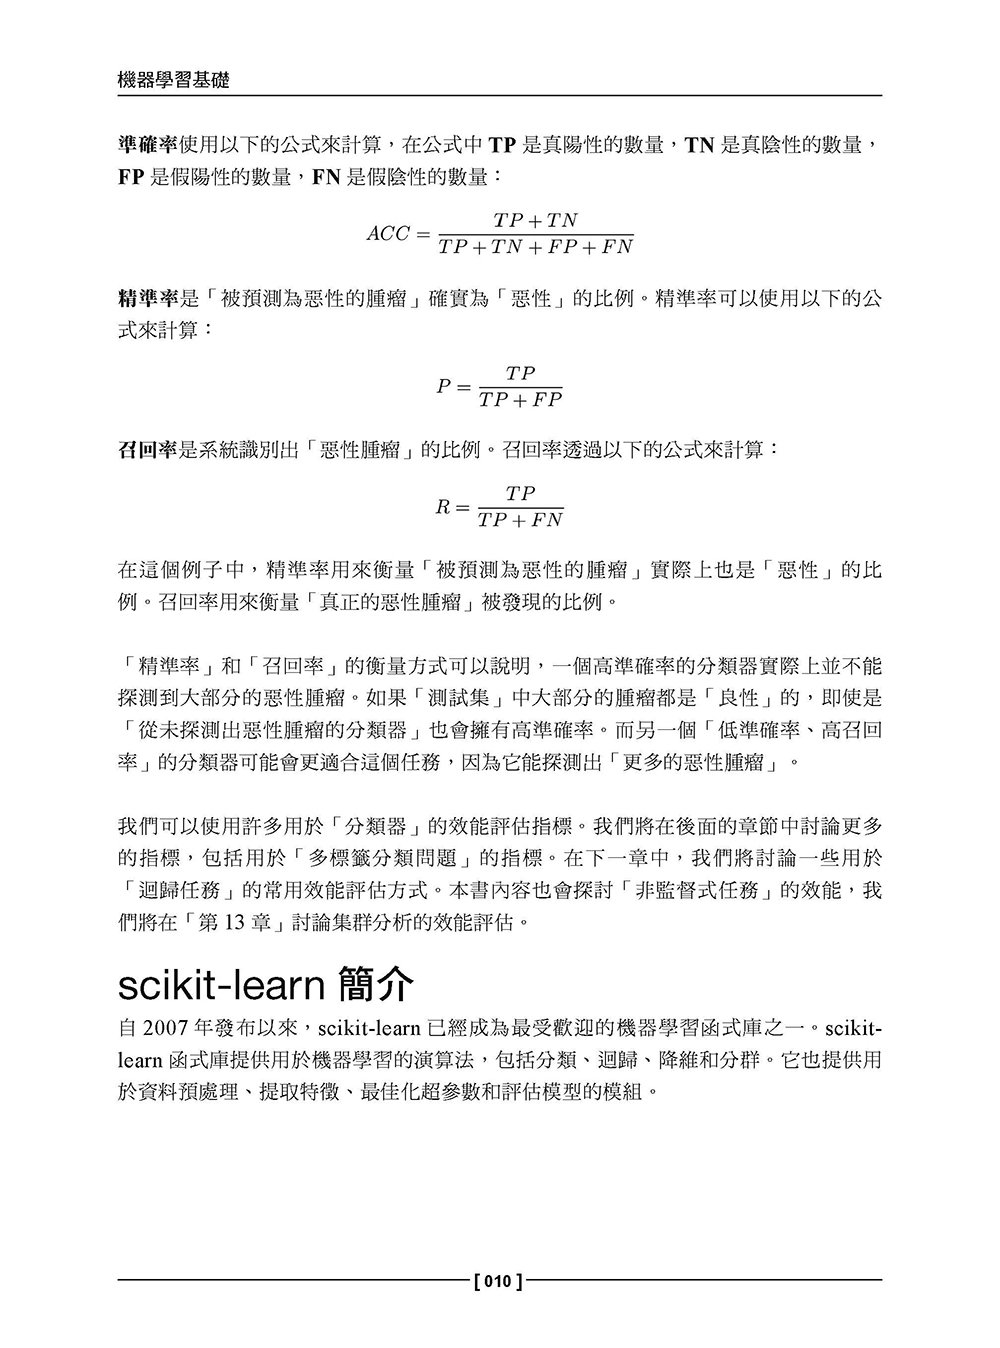 scikit-learn 新手的晉級:實作各種機器學習解決方案 (Mastering Machine Learning with scikit-learn, 2/e)-preview-3